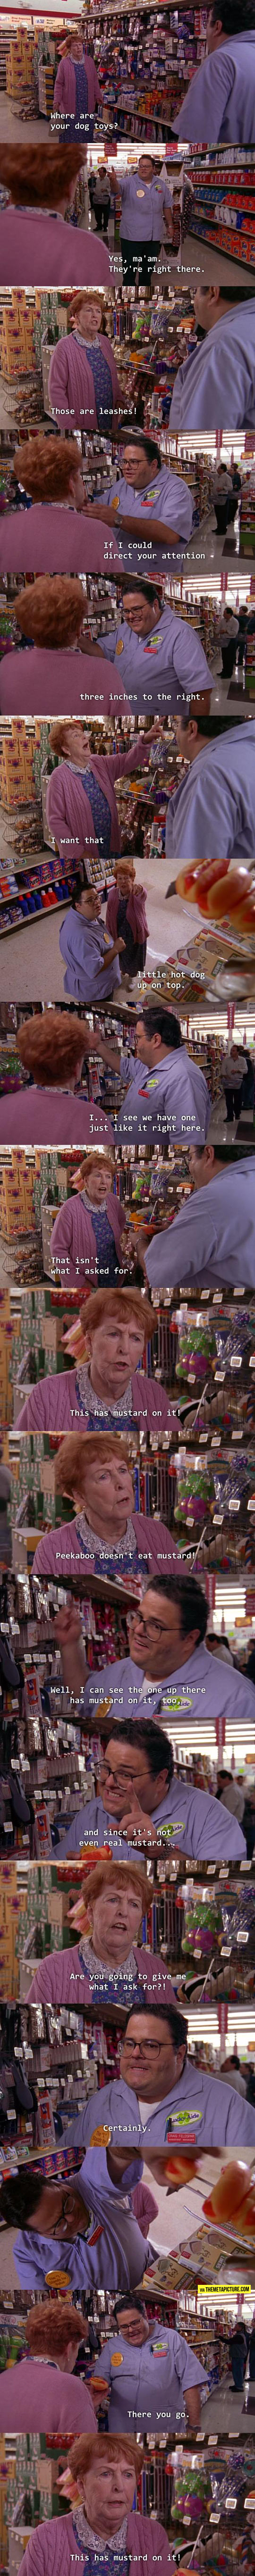 funny-working-retail-Malcolm-Middle